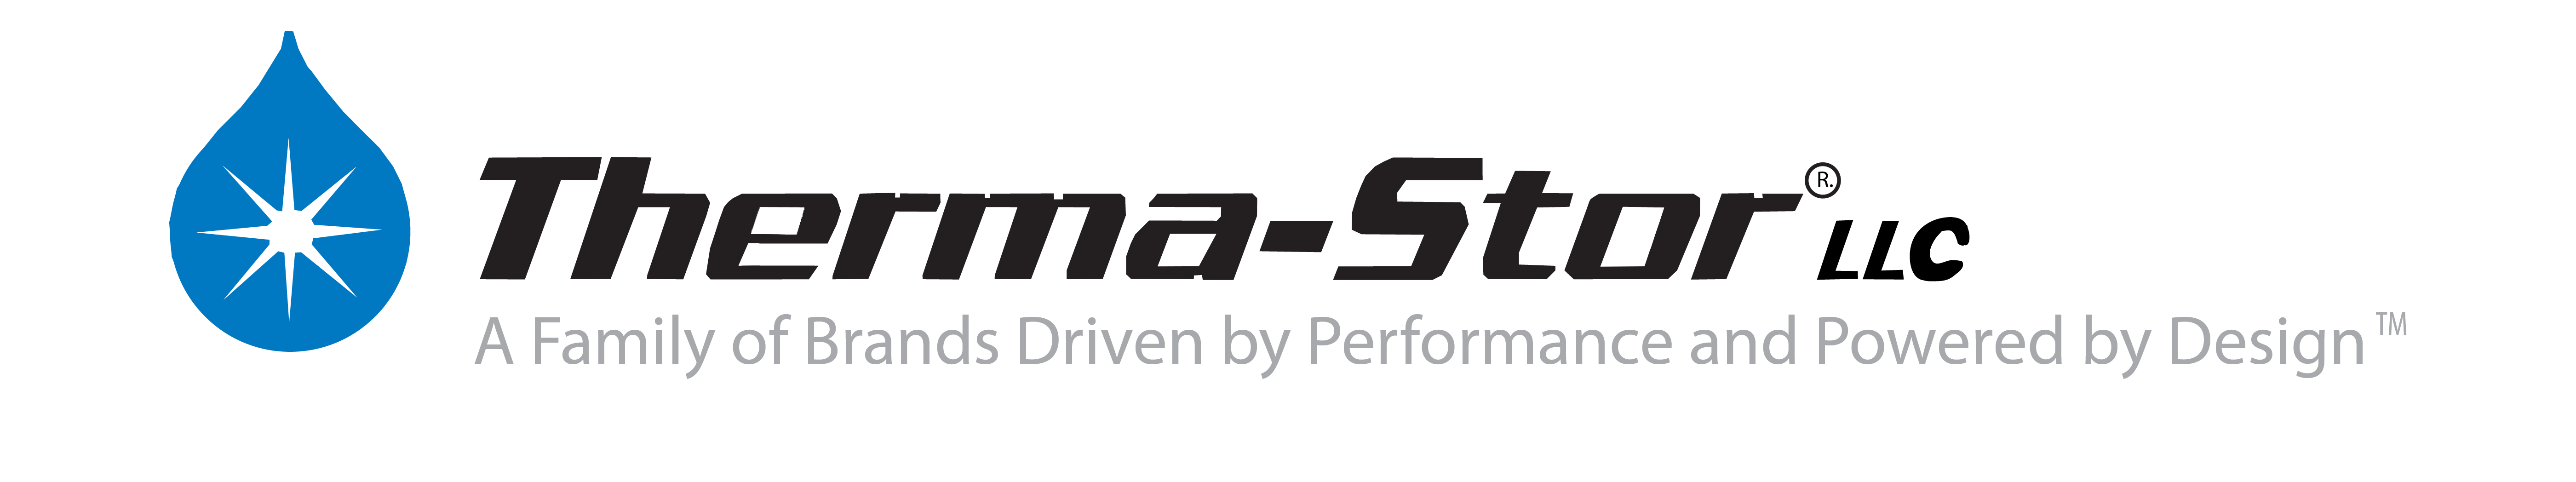 Trusted by Therma-Stor